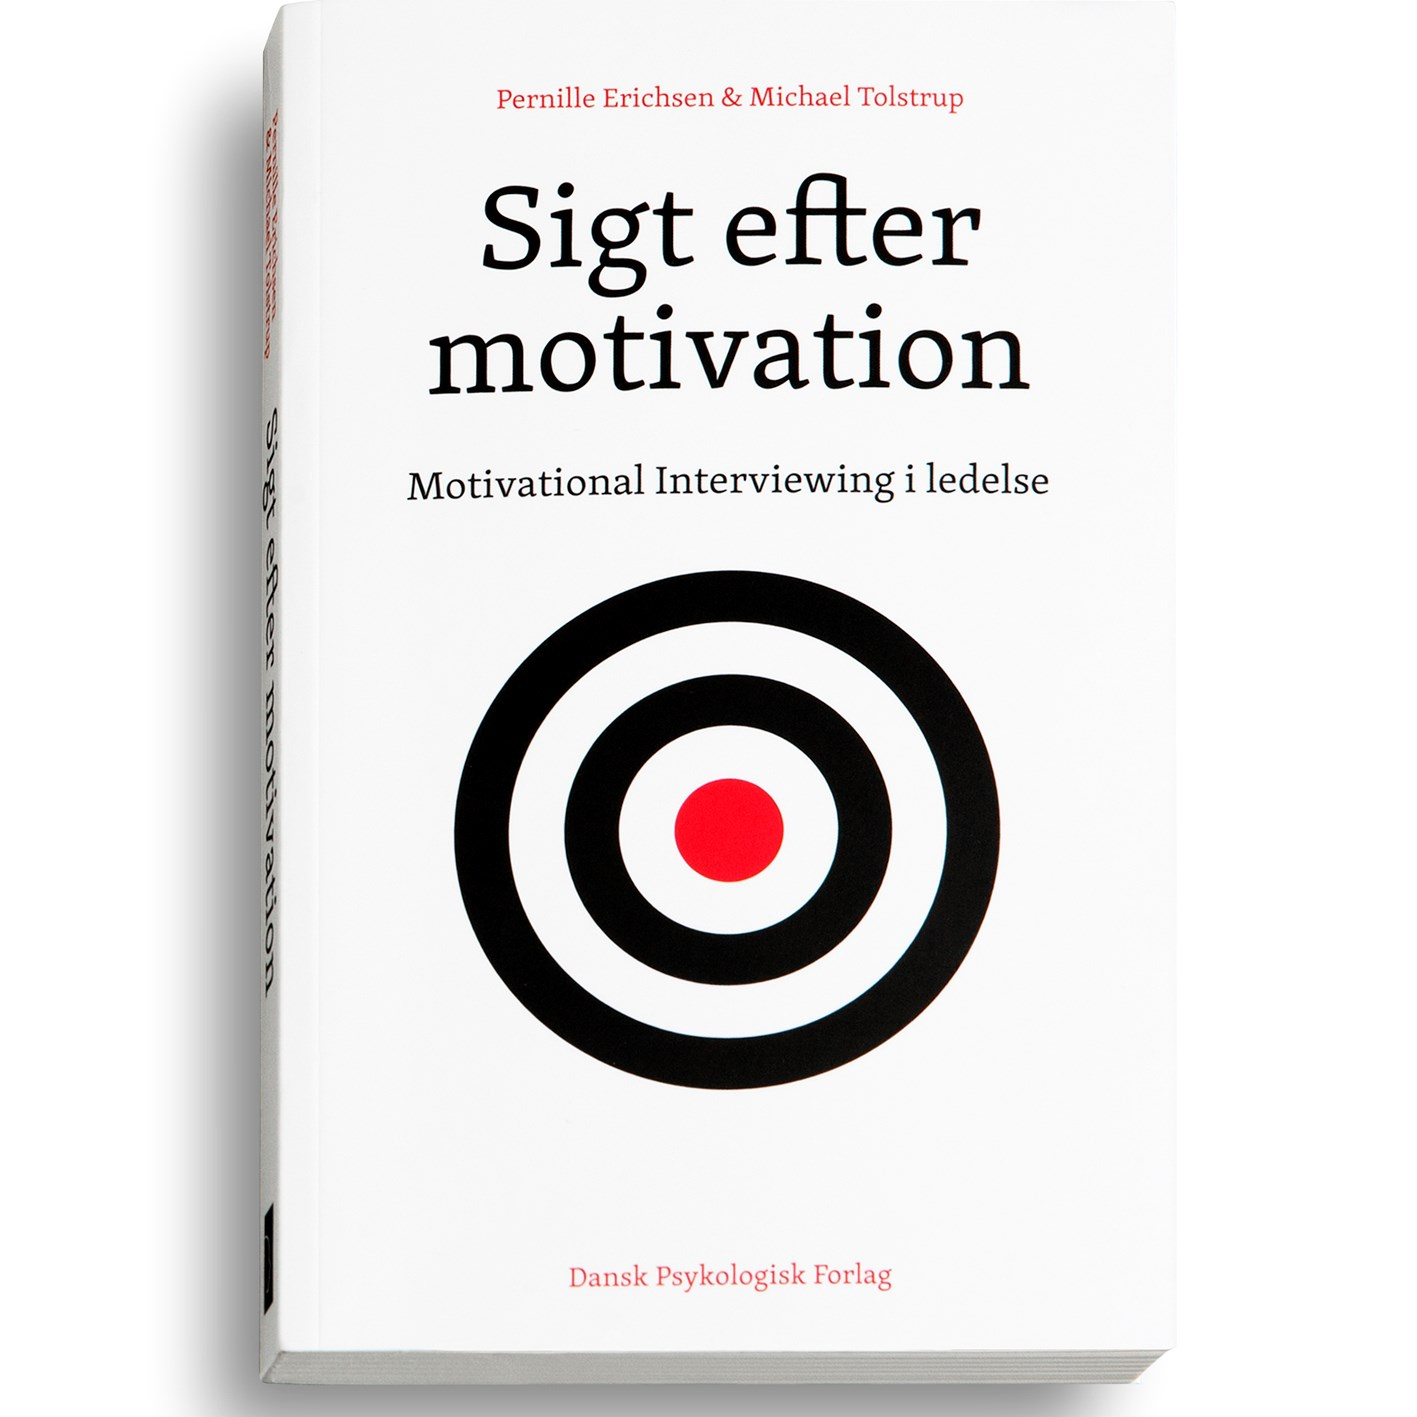 Sigt efter motivation: Motivational Interviewing i ledelse